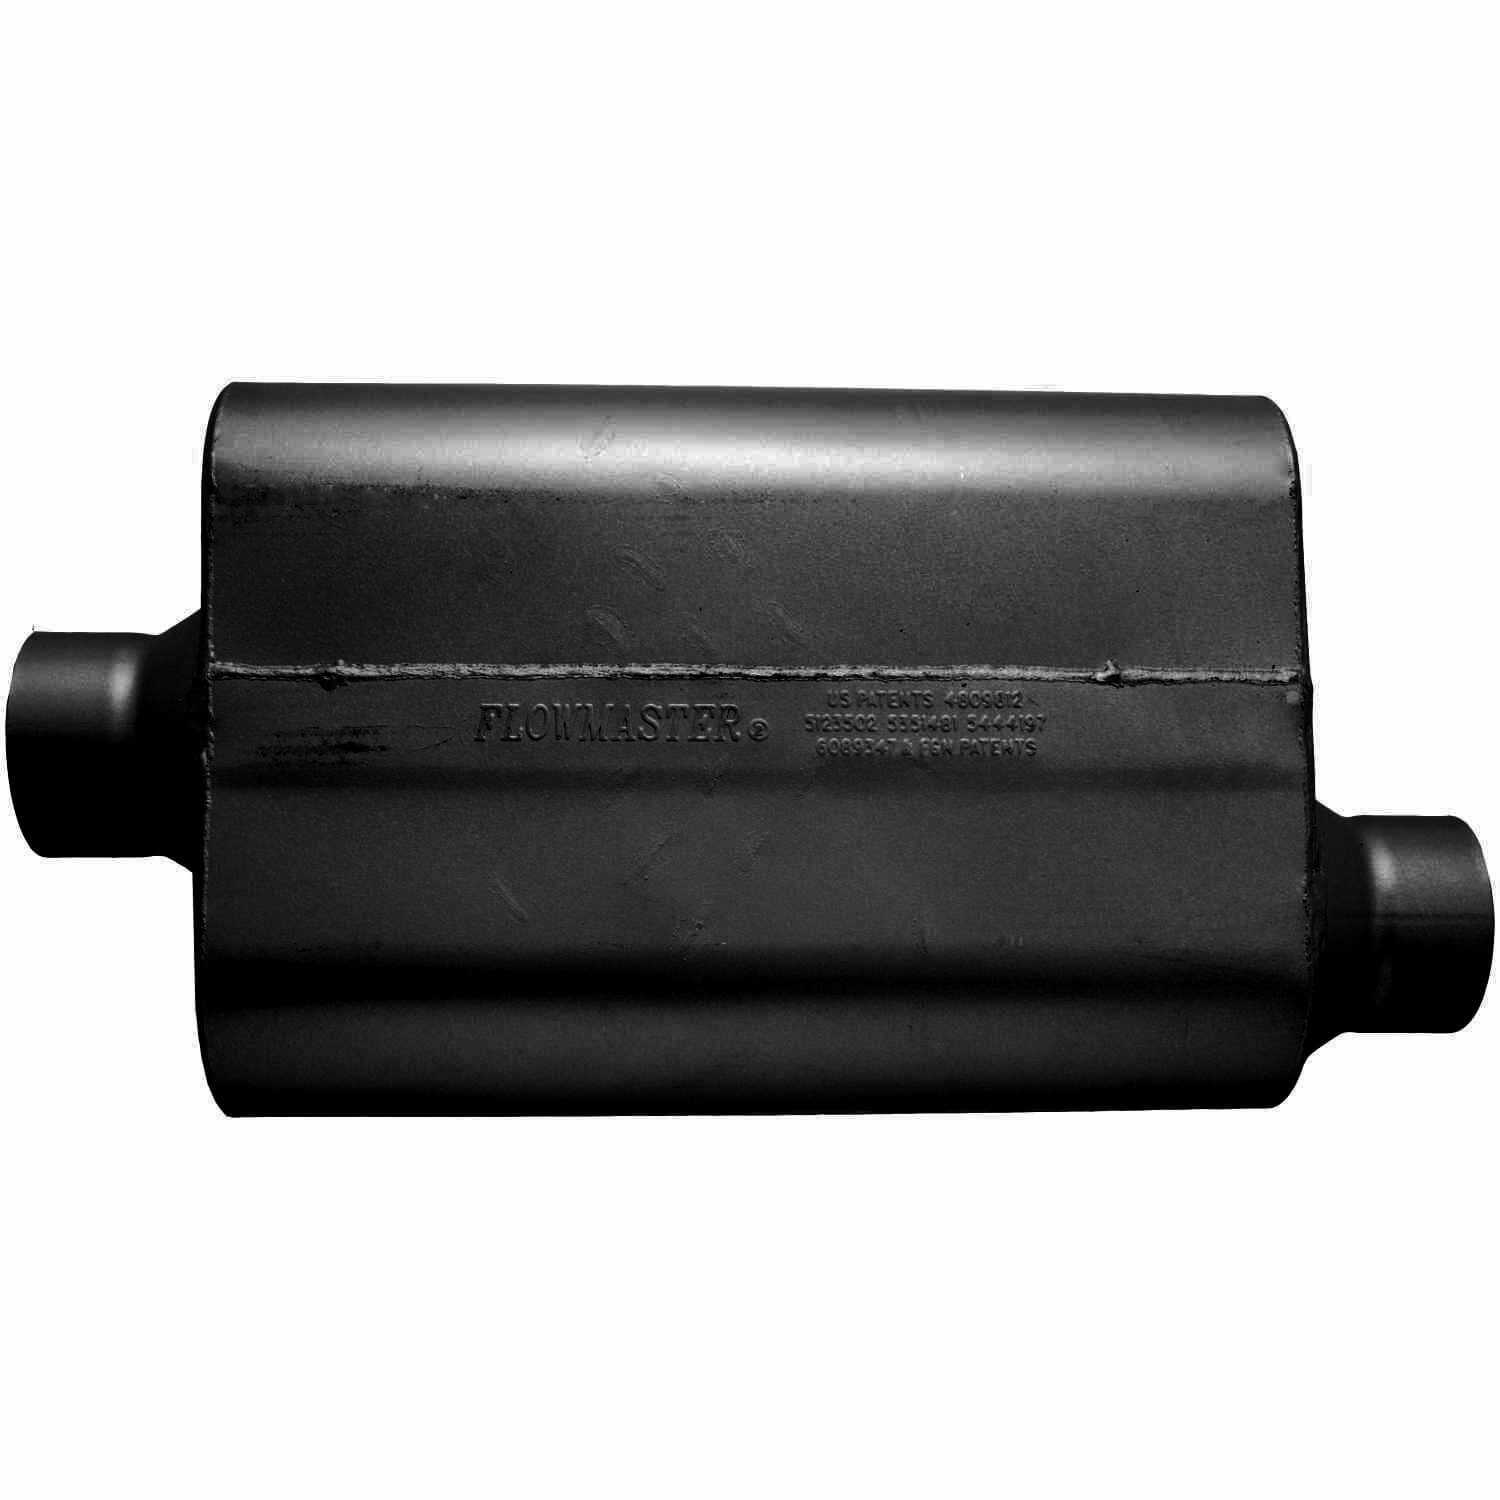 53531-12 Flowmaster 30 Series™ Delta Force Race Muffler